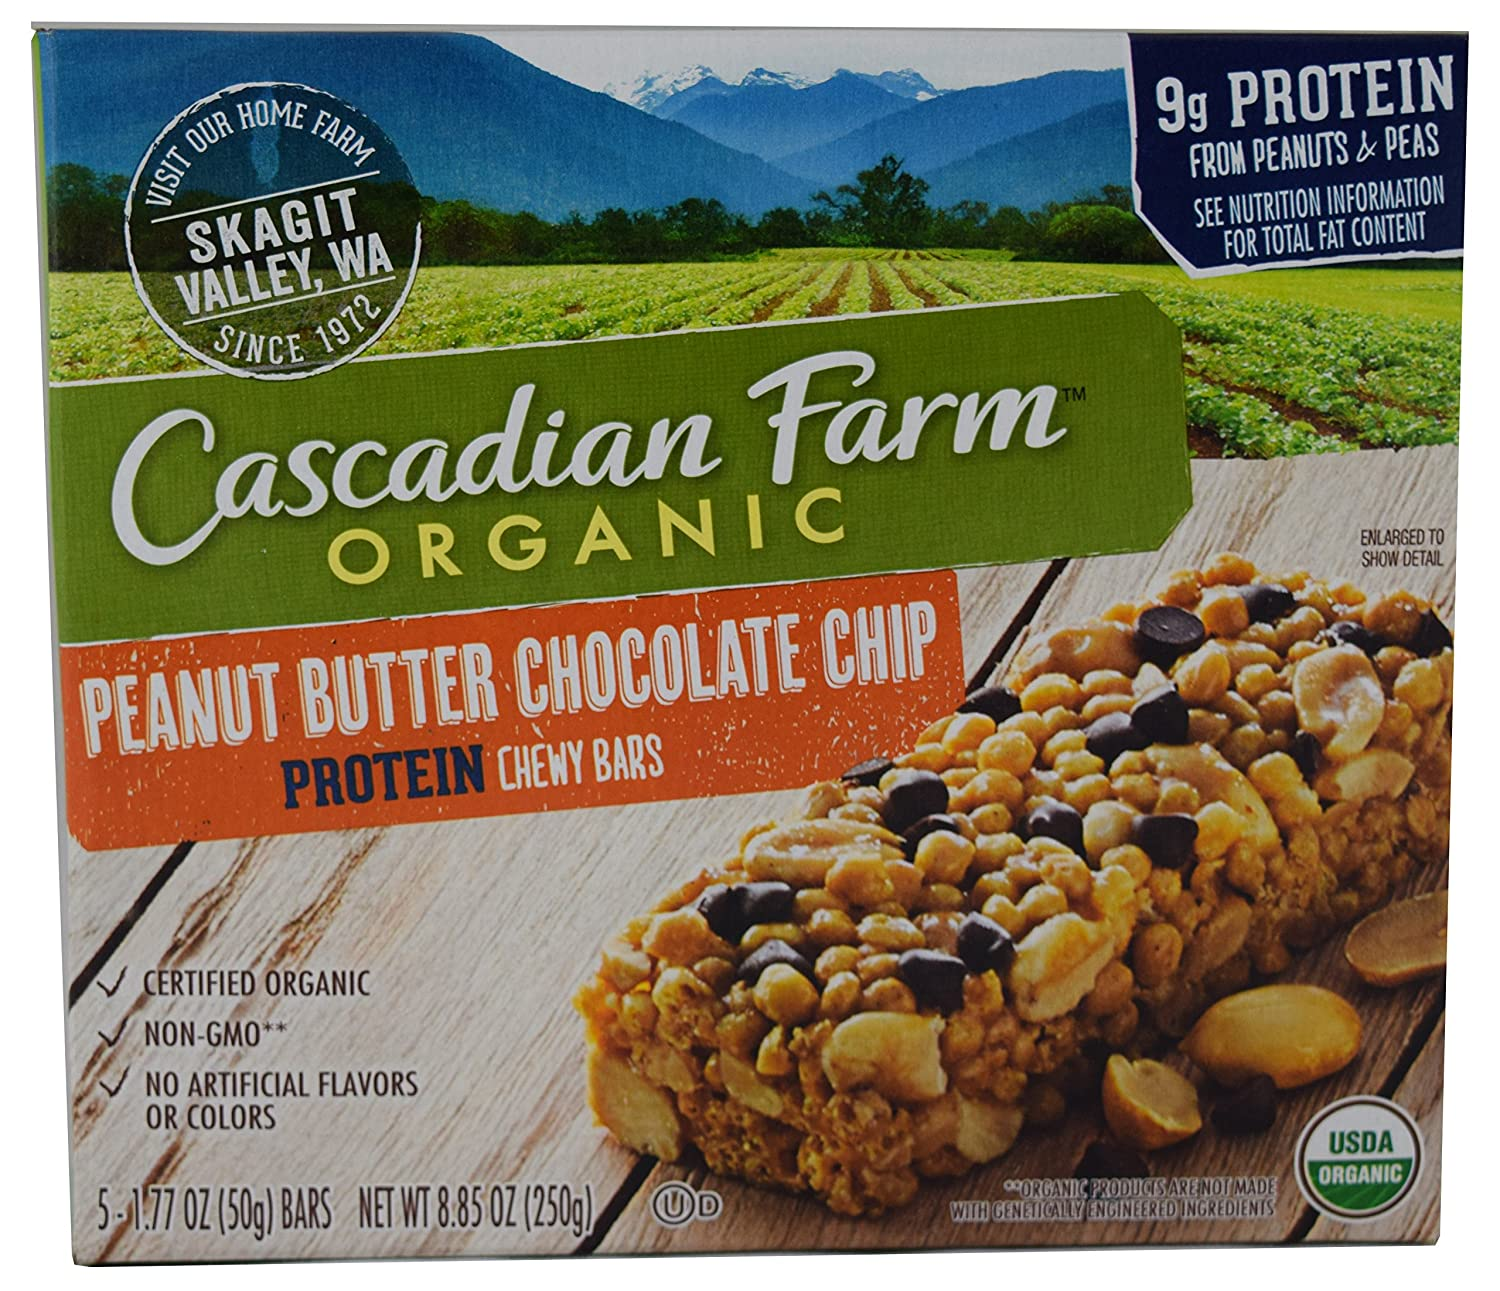 Cascadian Farm Organic Peanut Butter Chocolate Chip Protein 8 85 Oz